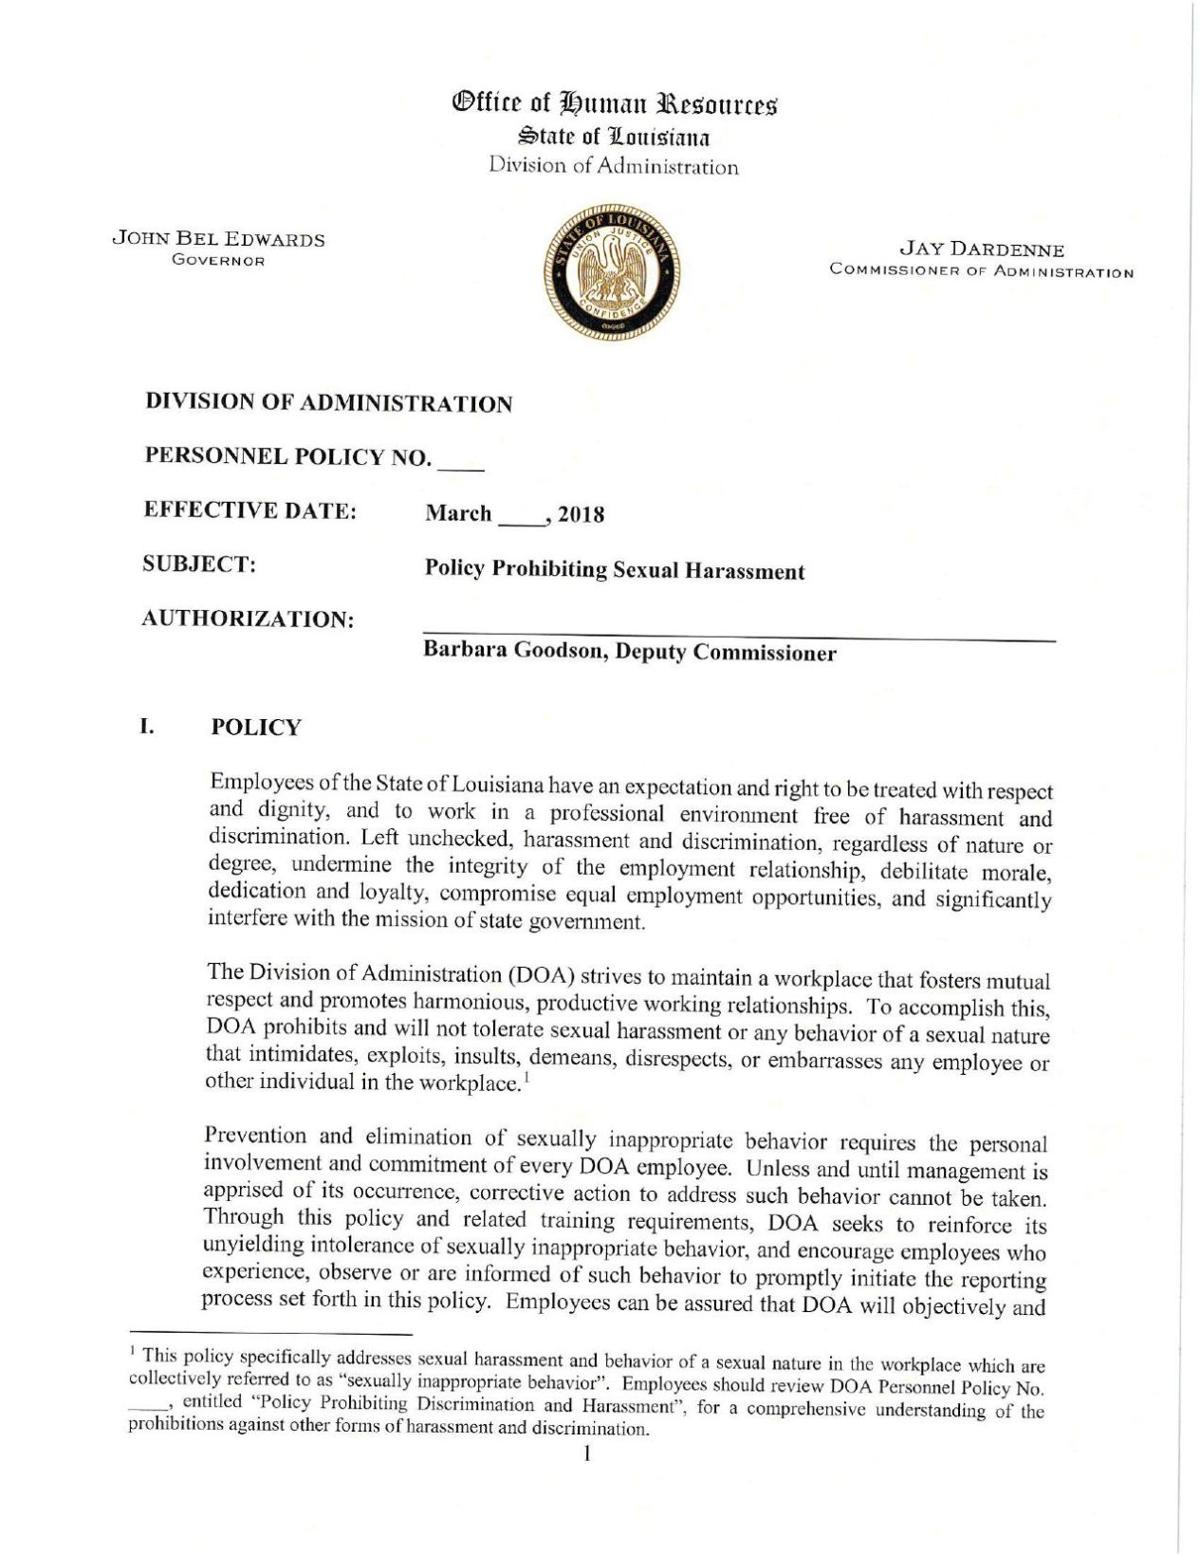 PDF: Draft sexual harassment policy proposed by task force